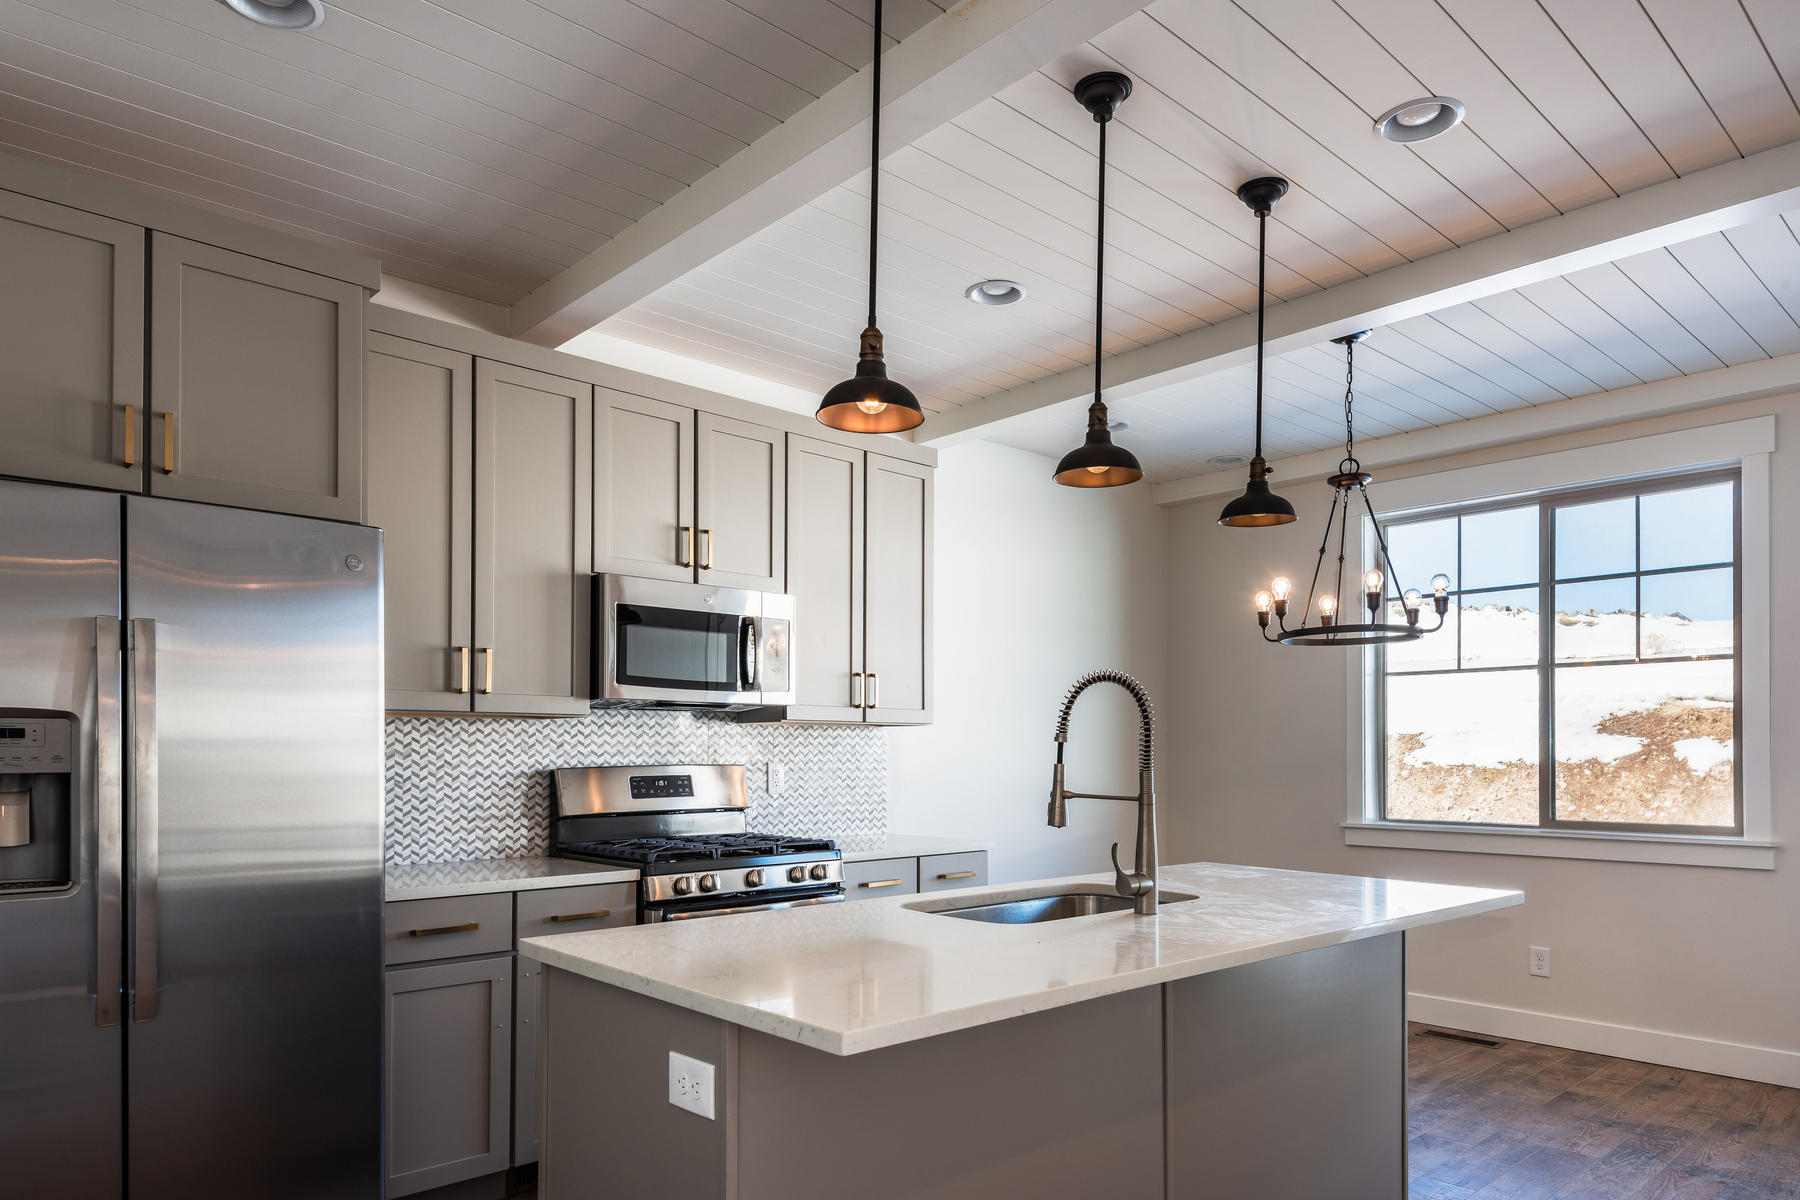 Additional photo for property listing at Brand New Beautiful Townhome Just 6 Minutes to Historic Park City 1112 W Wasatch Springs Rd #R2 Heber, Utah 84032 Estados Unidos